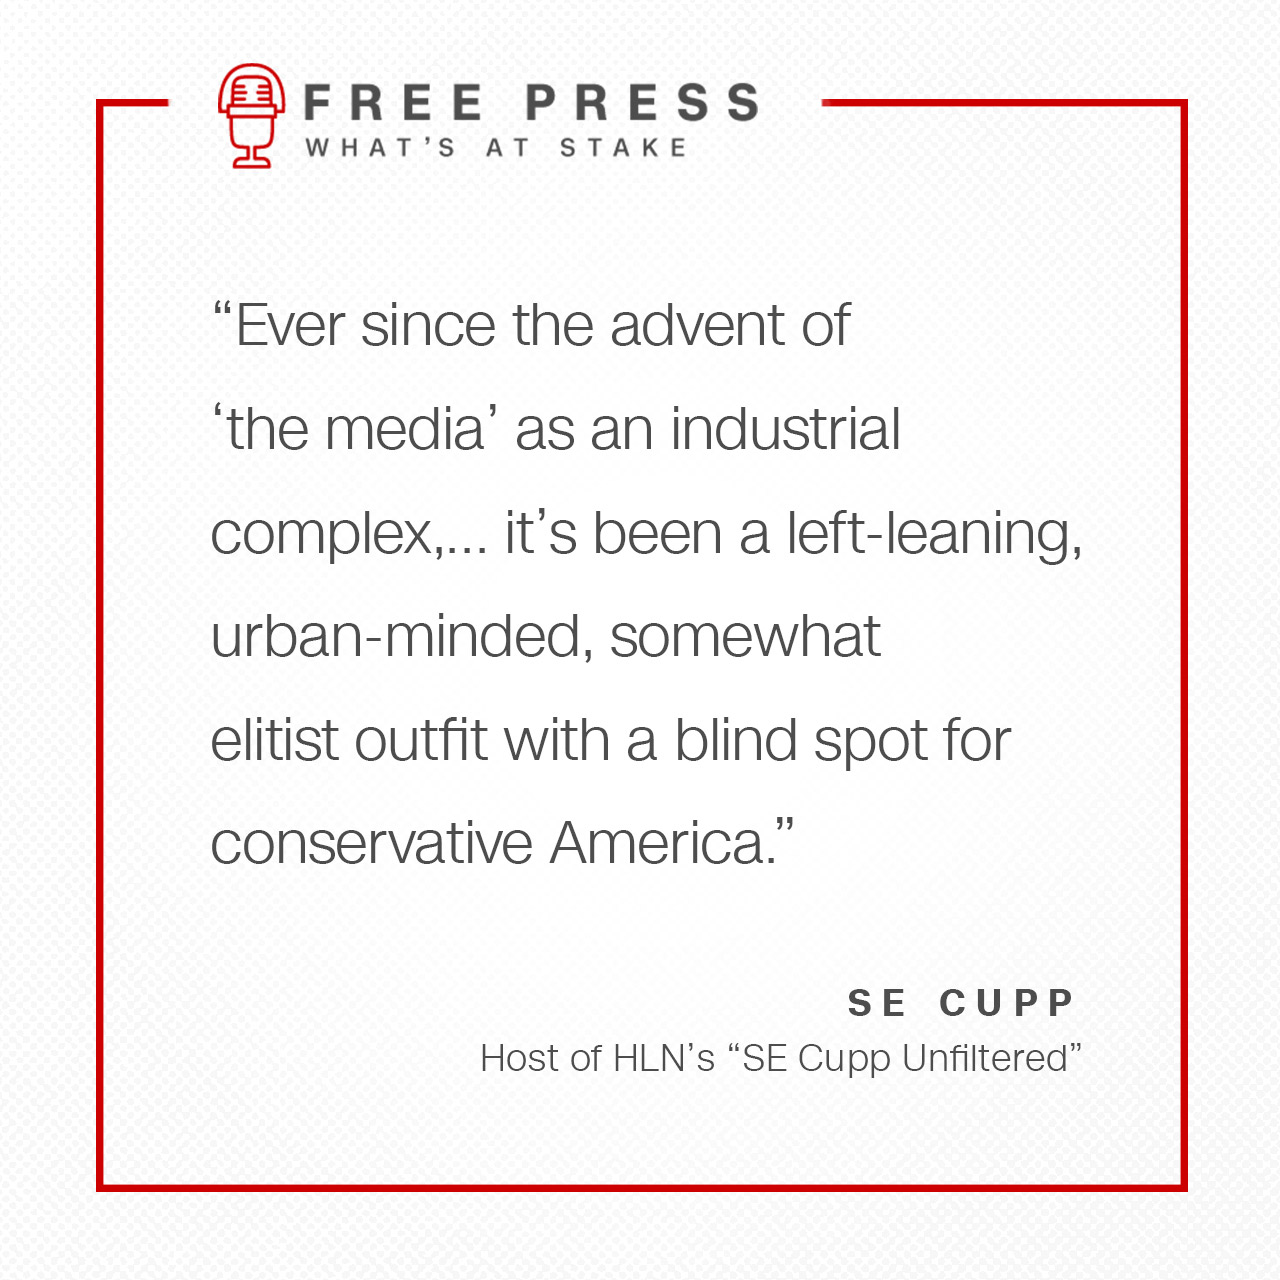 free-press-cupp-quote.jpg